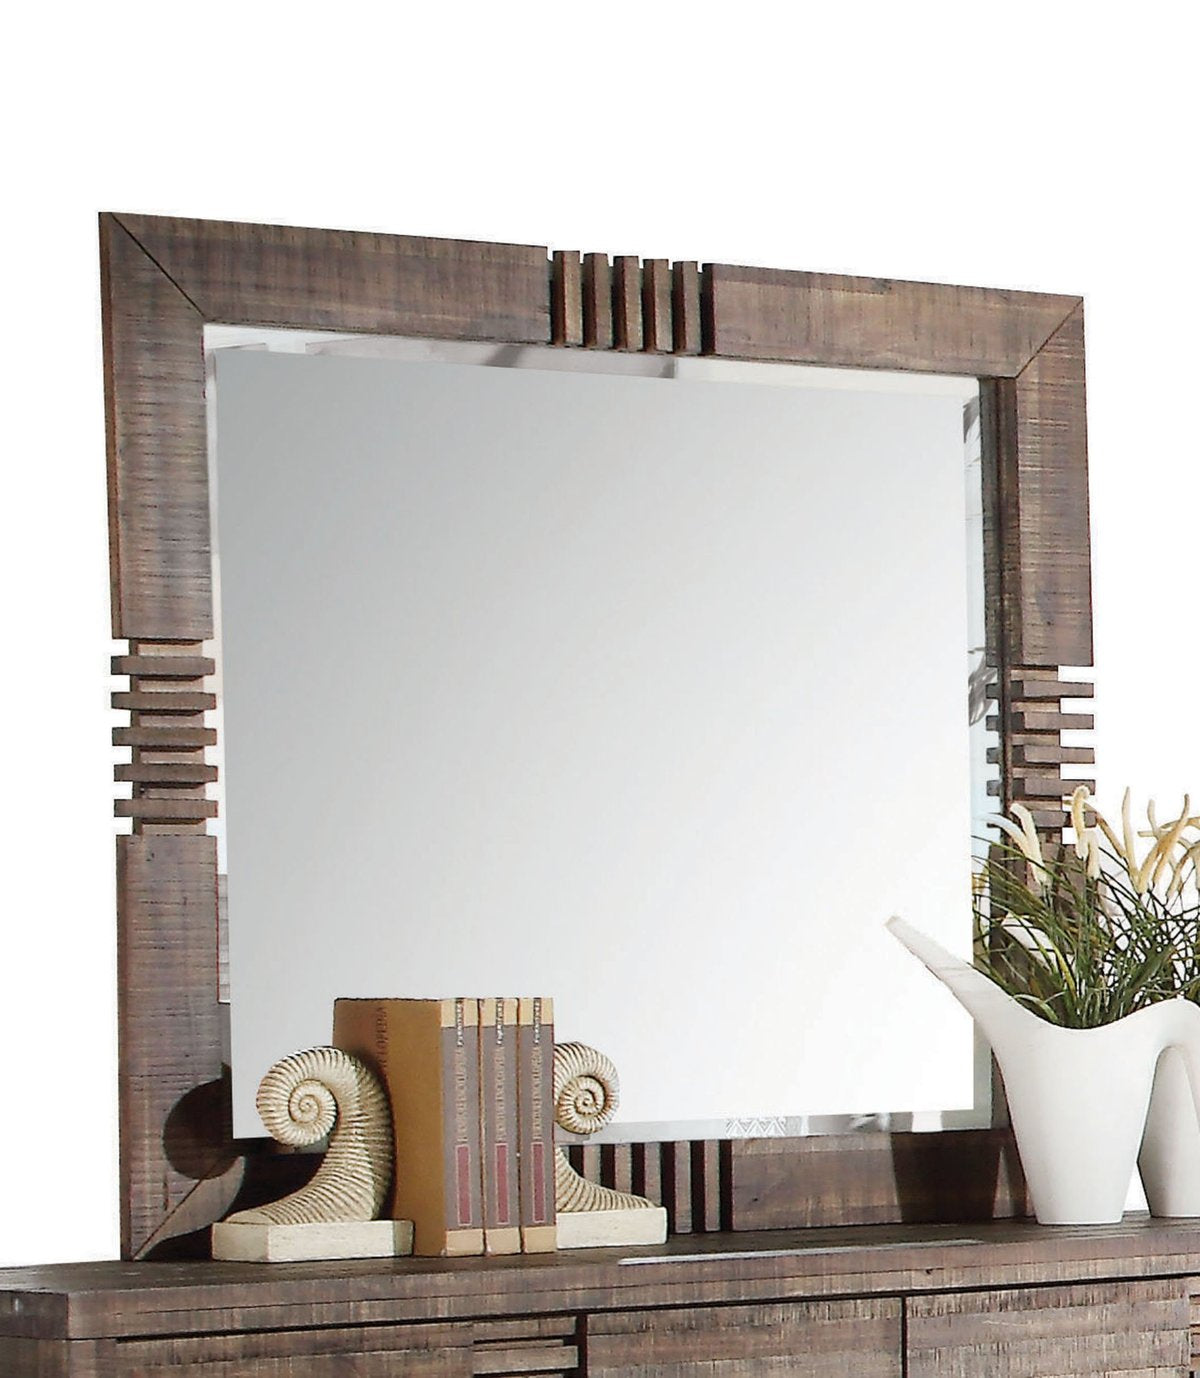 Mirror: Rectangular Wooden Frame Mirror With Slat Pattern